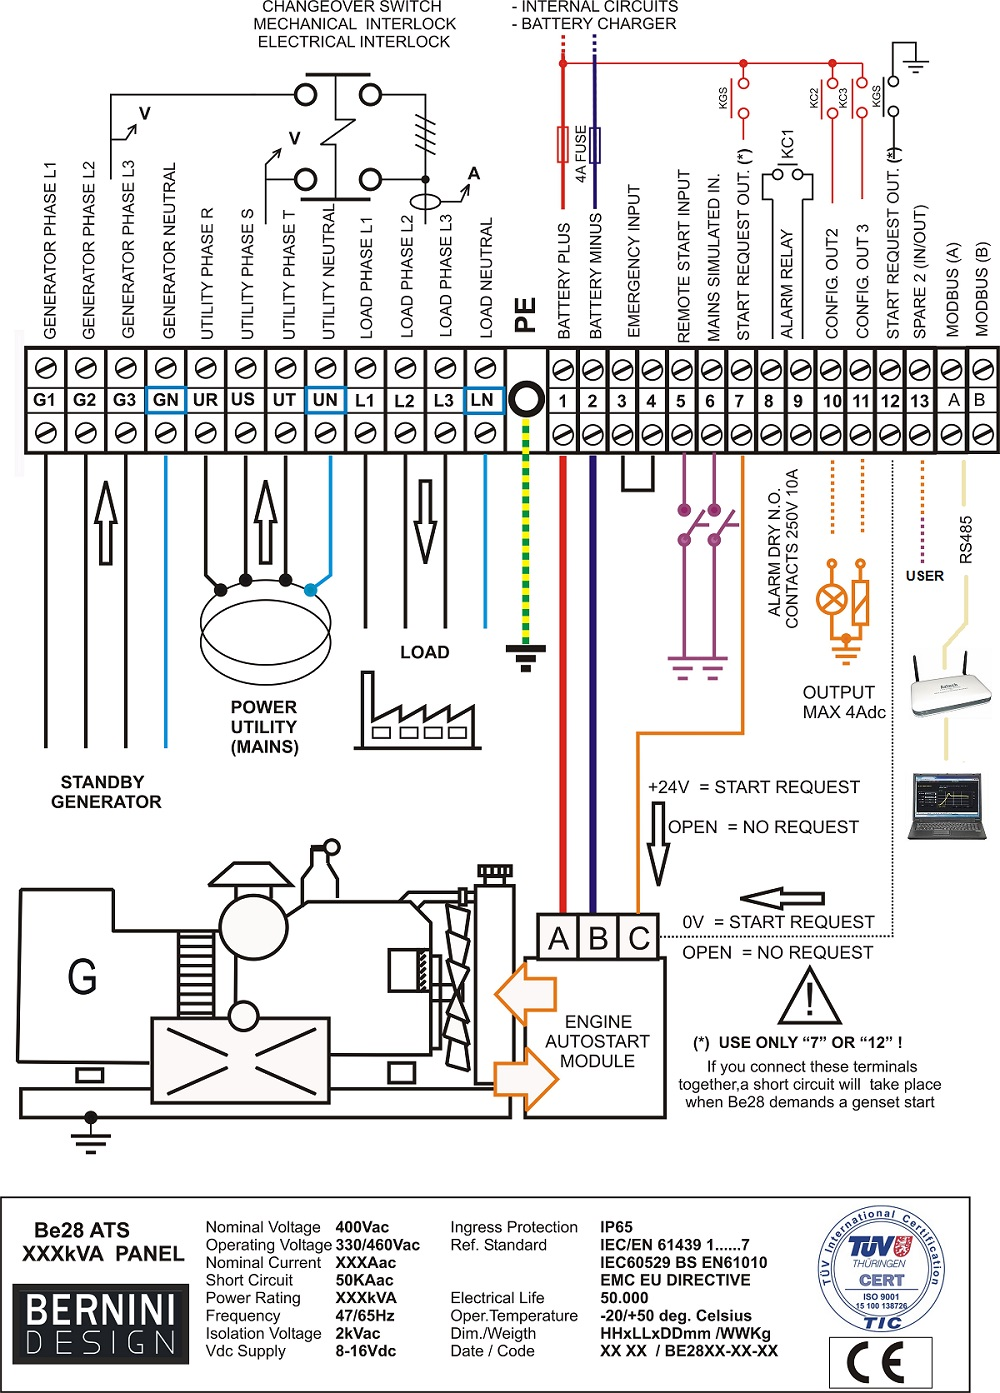 ats switch wiring diagram enthusiast wiring diagrams \u2022 rv water heater wiring diagram automatic transfer switch wiring diagram genset controller rh bernini design com rv automatic transfer switch wiring diagram ats transfer switch wiring